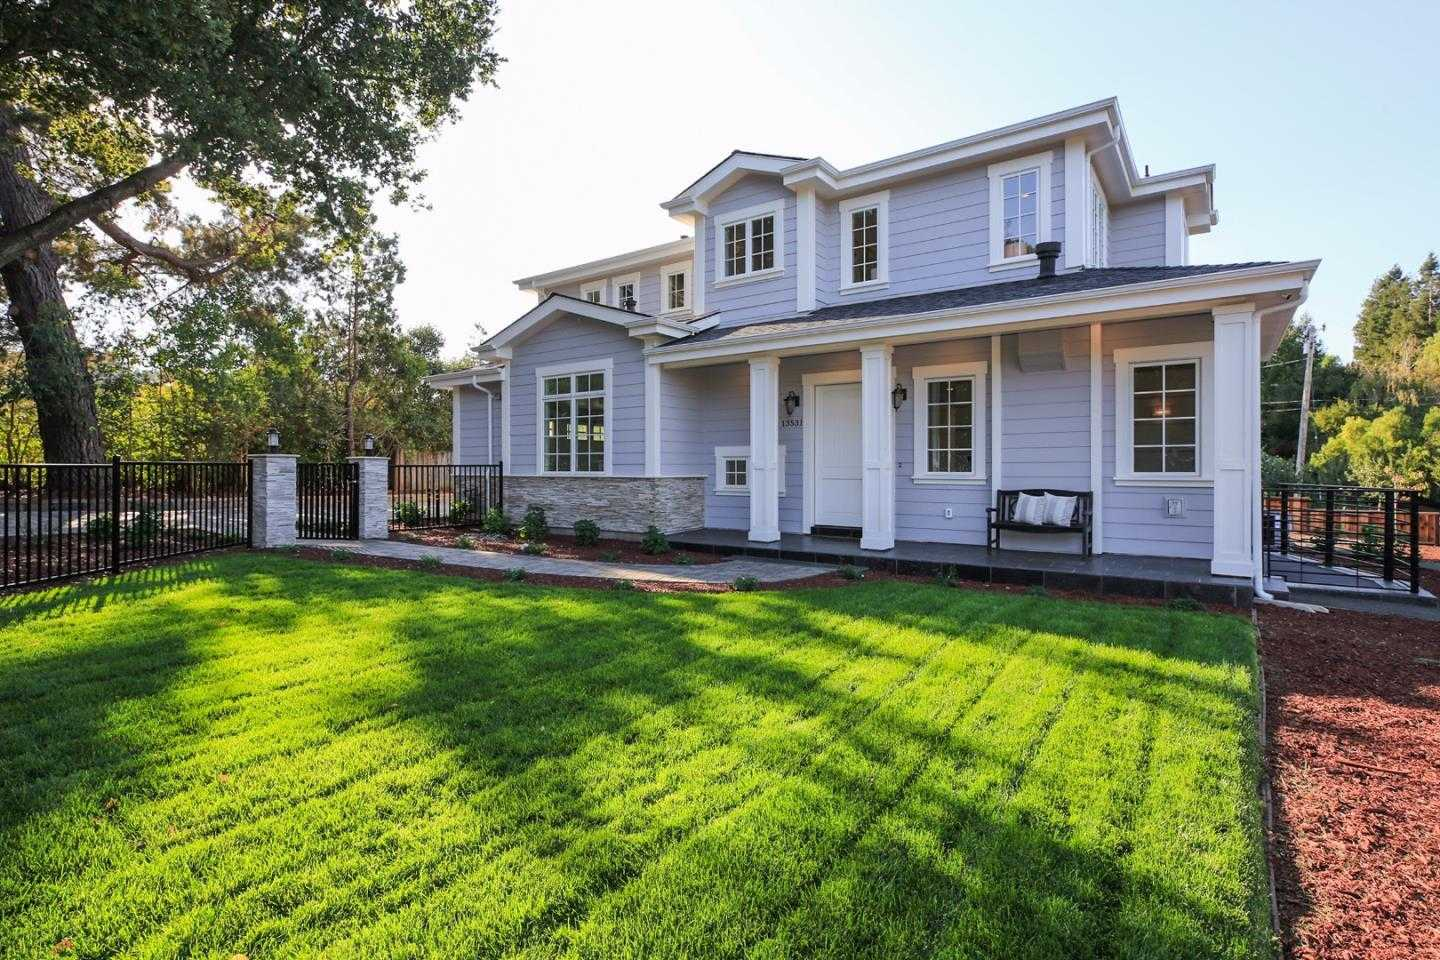 $6,275,000 - 5Br/6Ba -  for Sale in Los Altos Hills